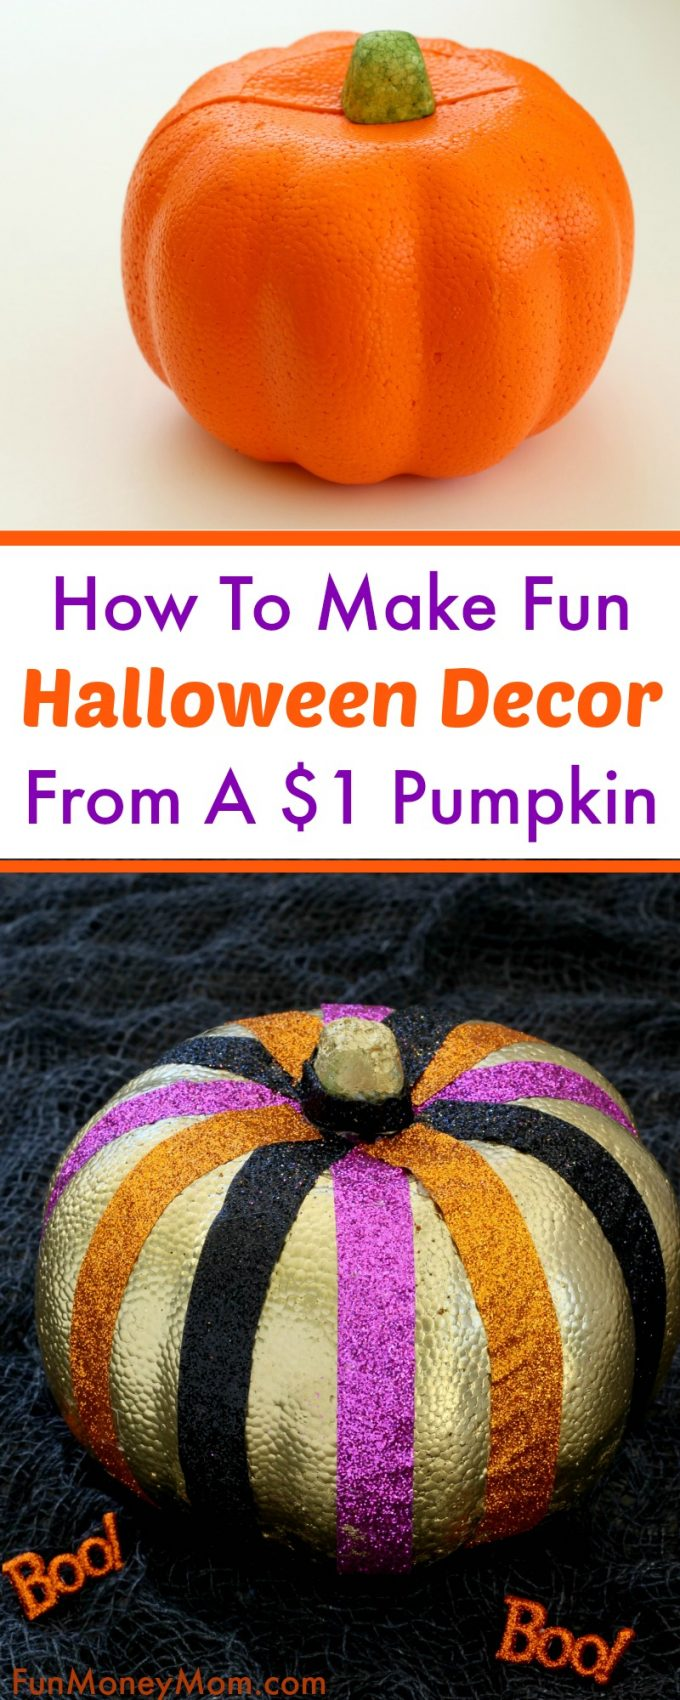 Check out how you can make fun Halloween decor from an ugly styrofoam pumpkin! Even better, let the kids help make this no carve pumpkin for a fun kids craft.